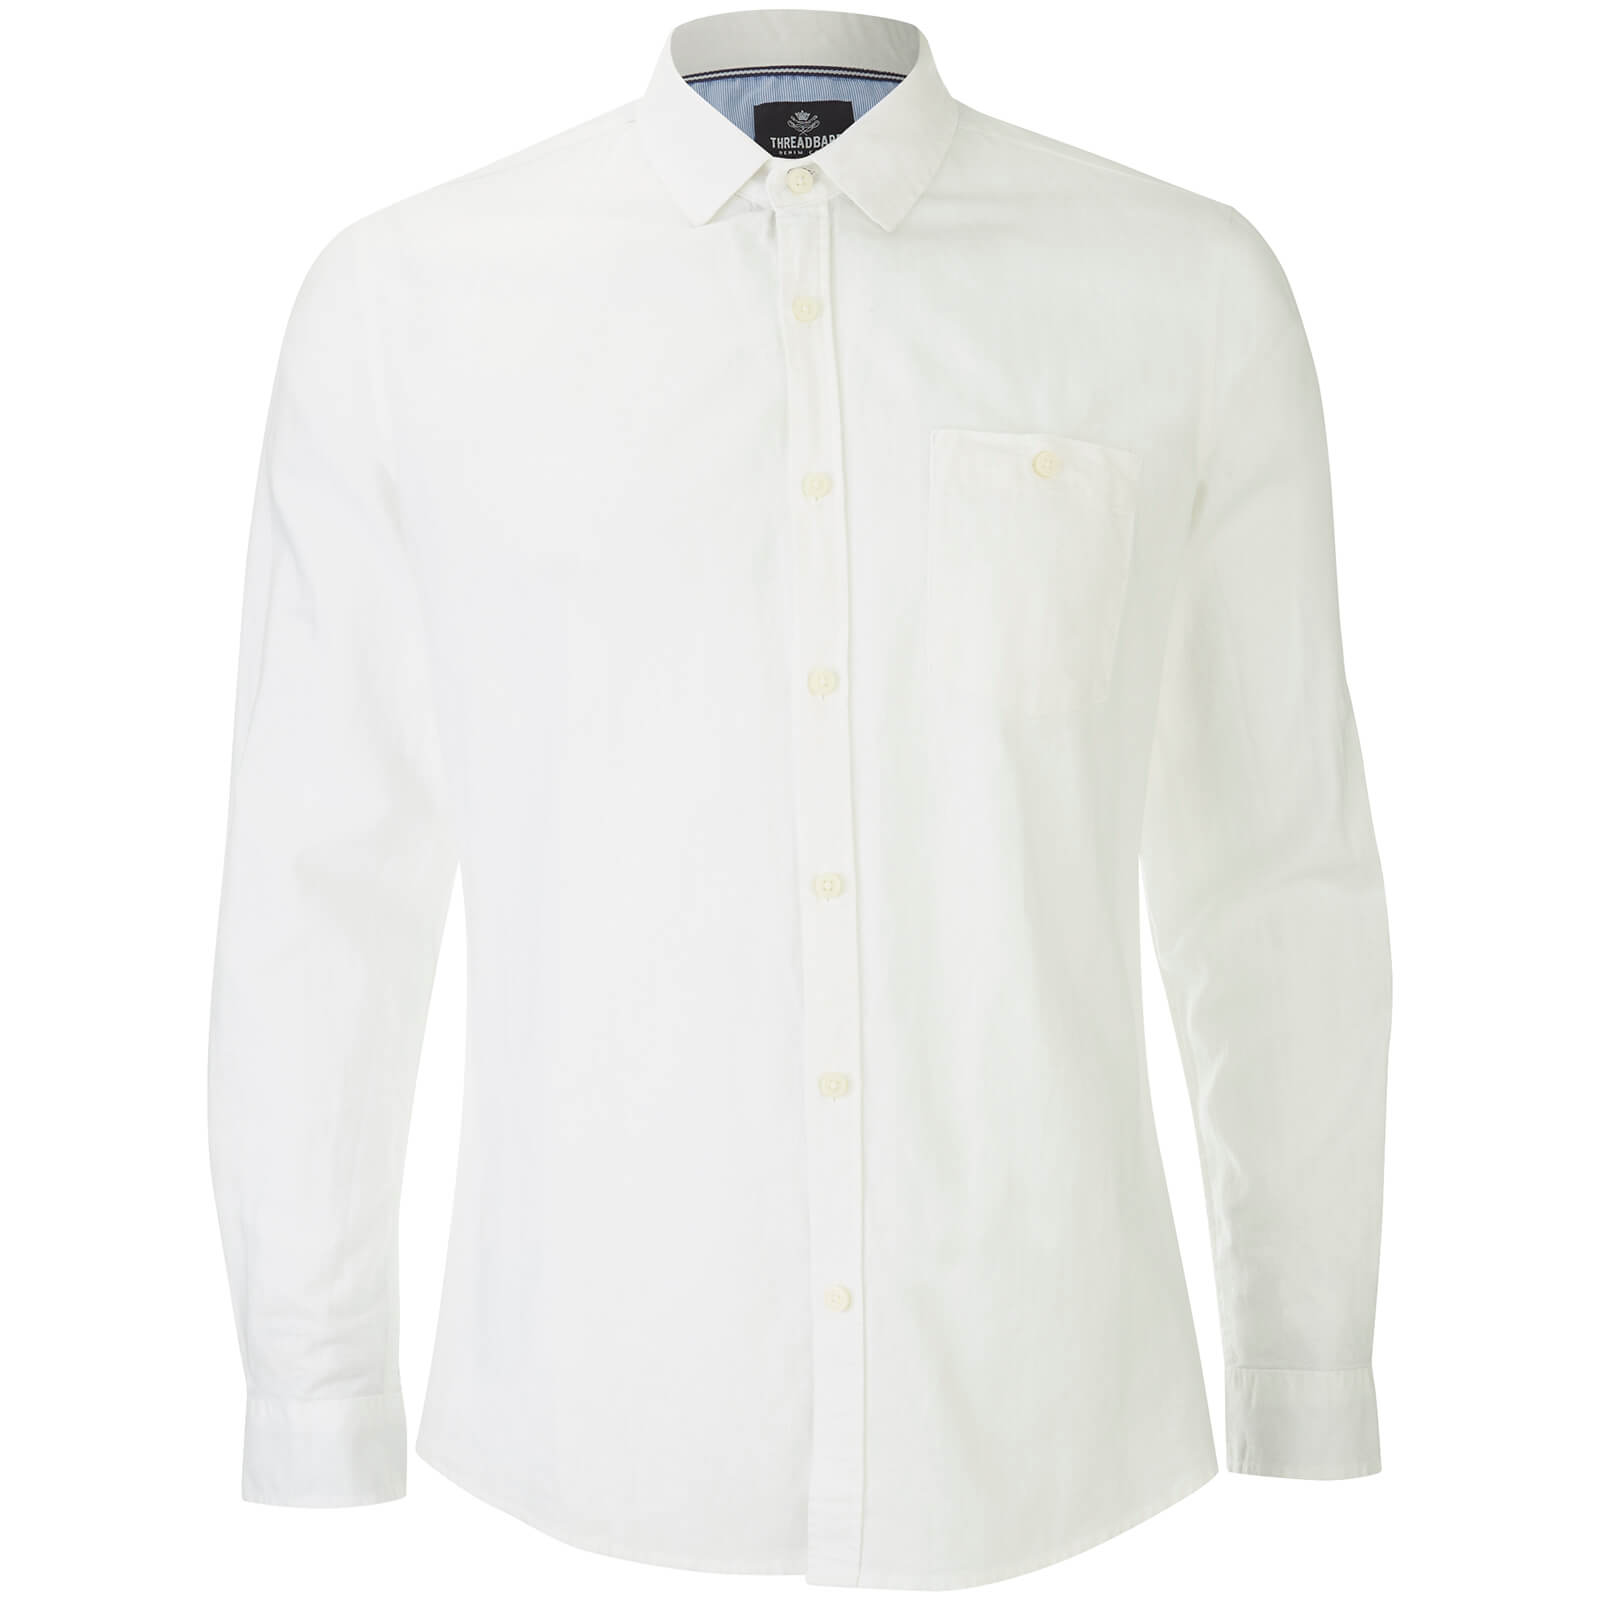 Chemise Manches Longues Butterbean Threadbare -Blanc